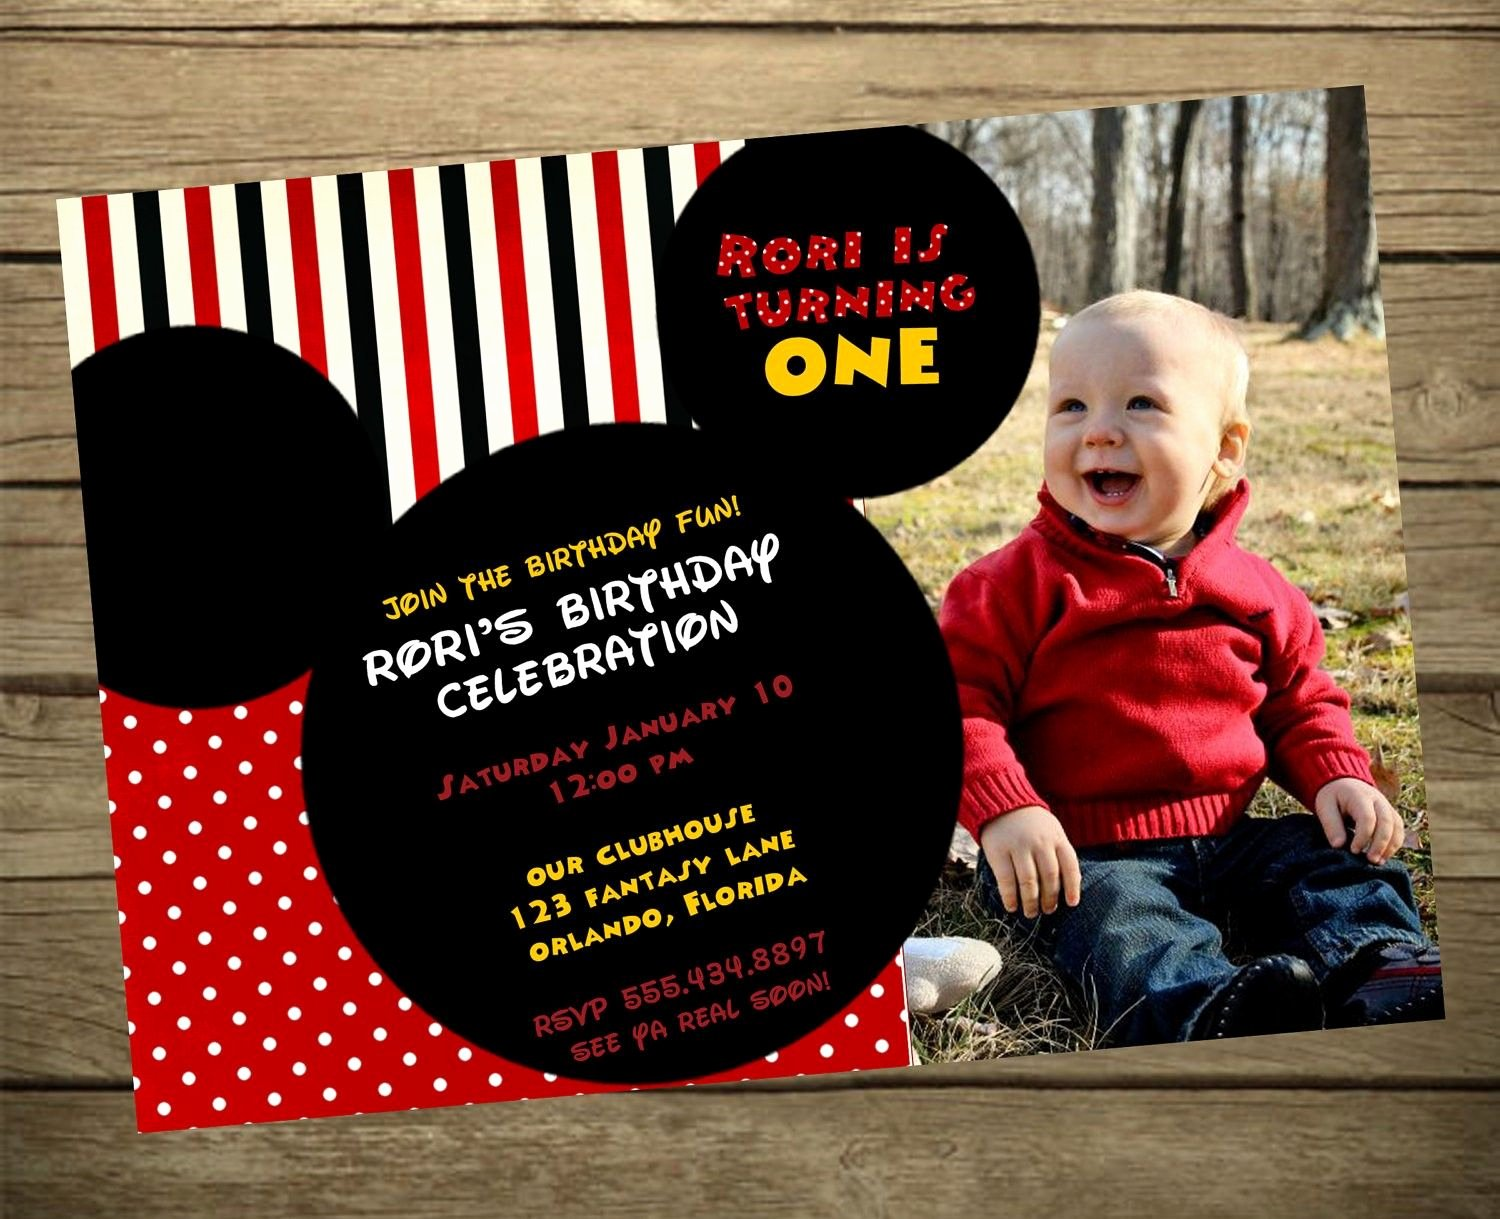 Mickey Mouse Invitations Wording Beautiful Mickey Mouse Clubhouse Birthday Party Invitation Wording